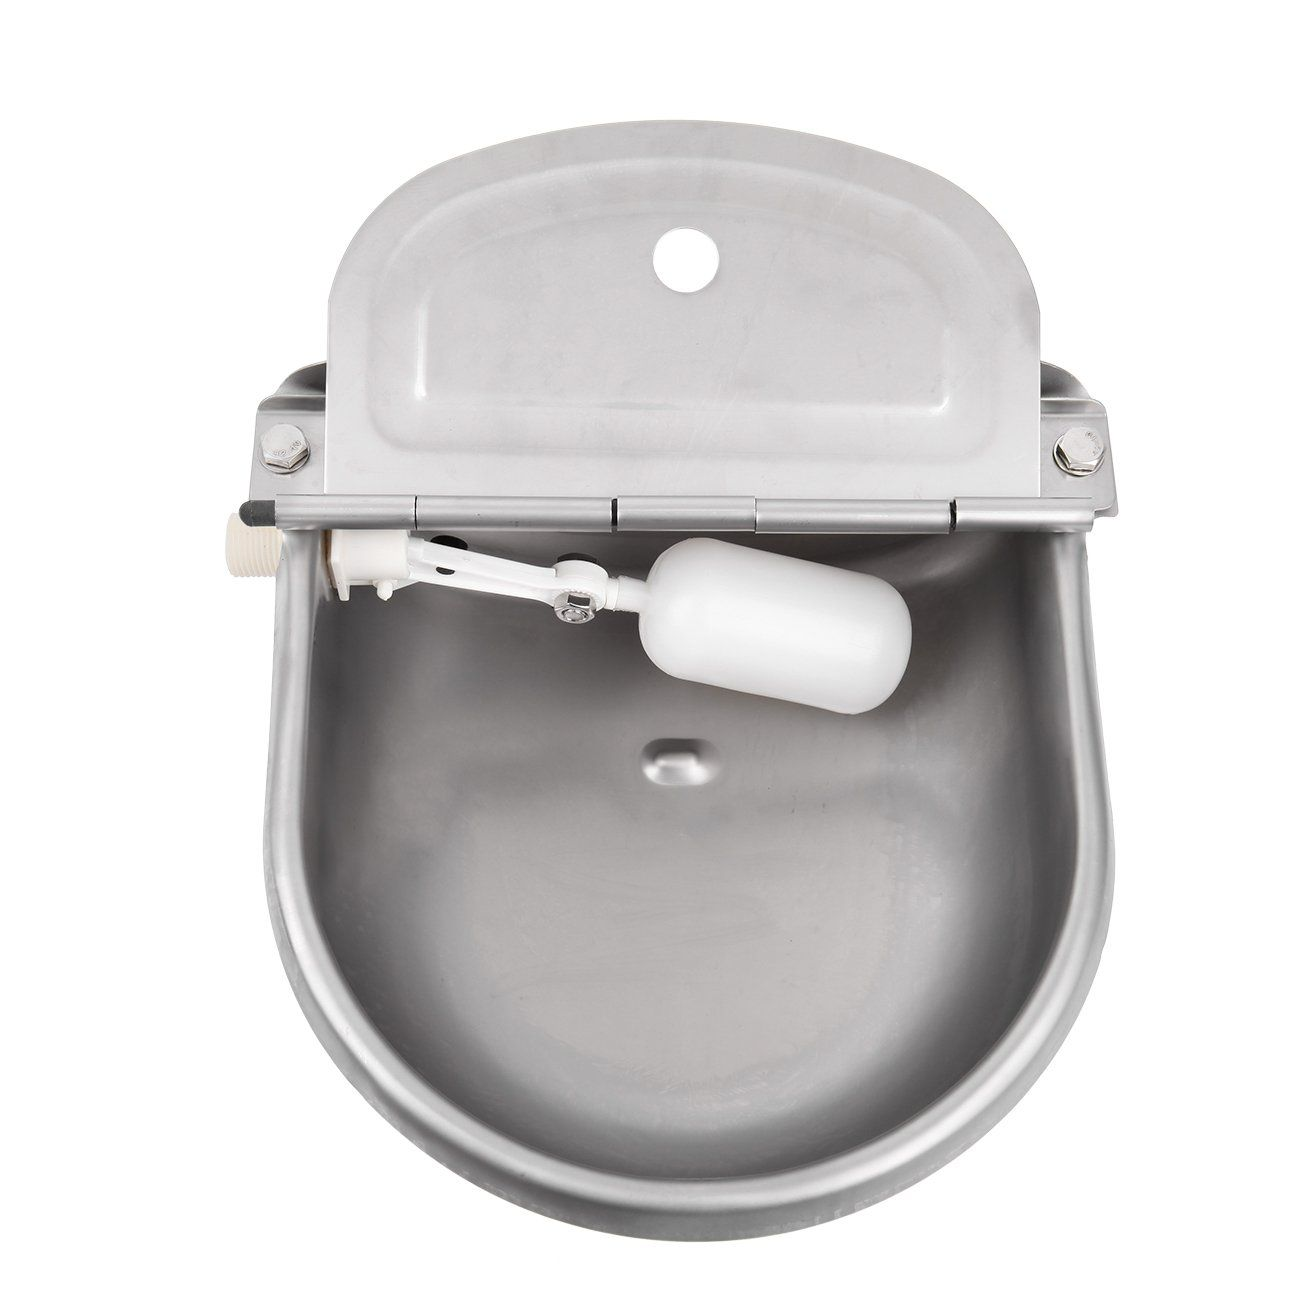 Ridgeyard Outdoor Automatic Stock Pet Waterer Water Trough Stainless Steel Sheep Dog Chicken Cow Auto Fill Bowl Want Add Dog Feeding Sheepdog Dogs